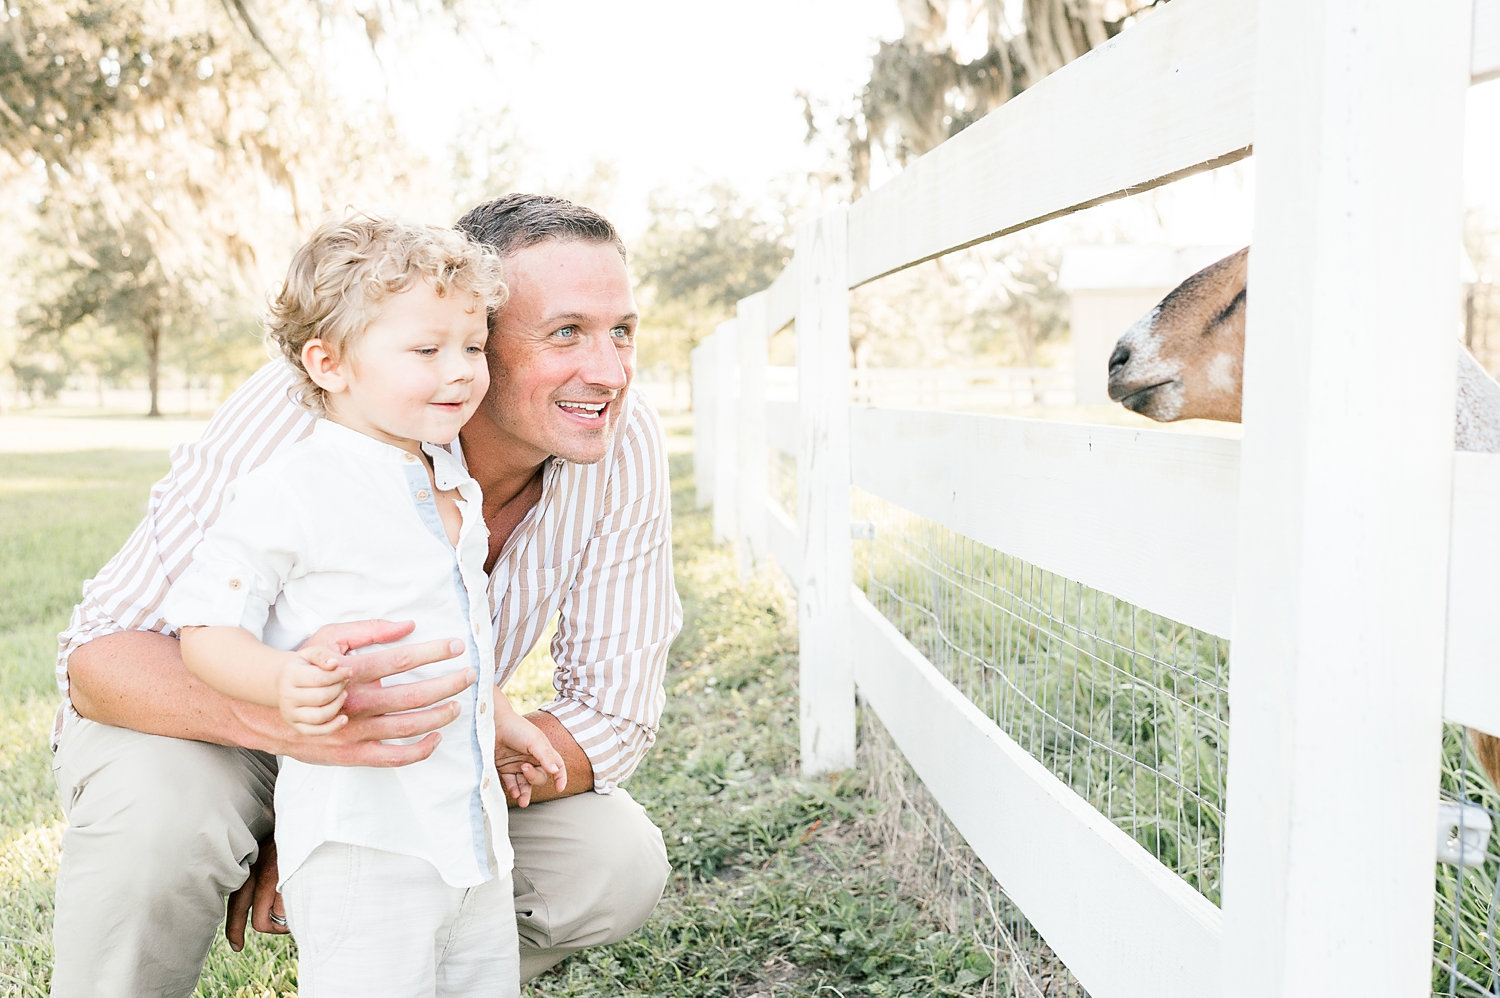 father and son, Ryan Lochte kids, goat, Congaree and Penn, farm family photo session